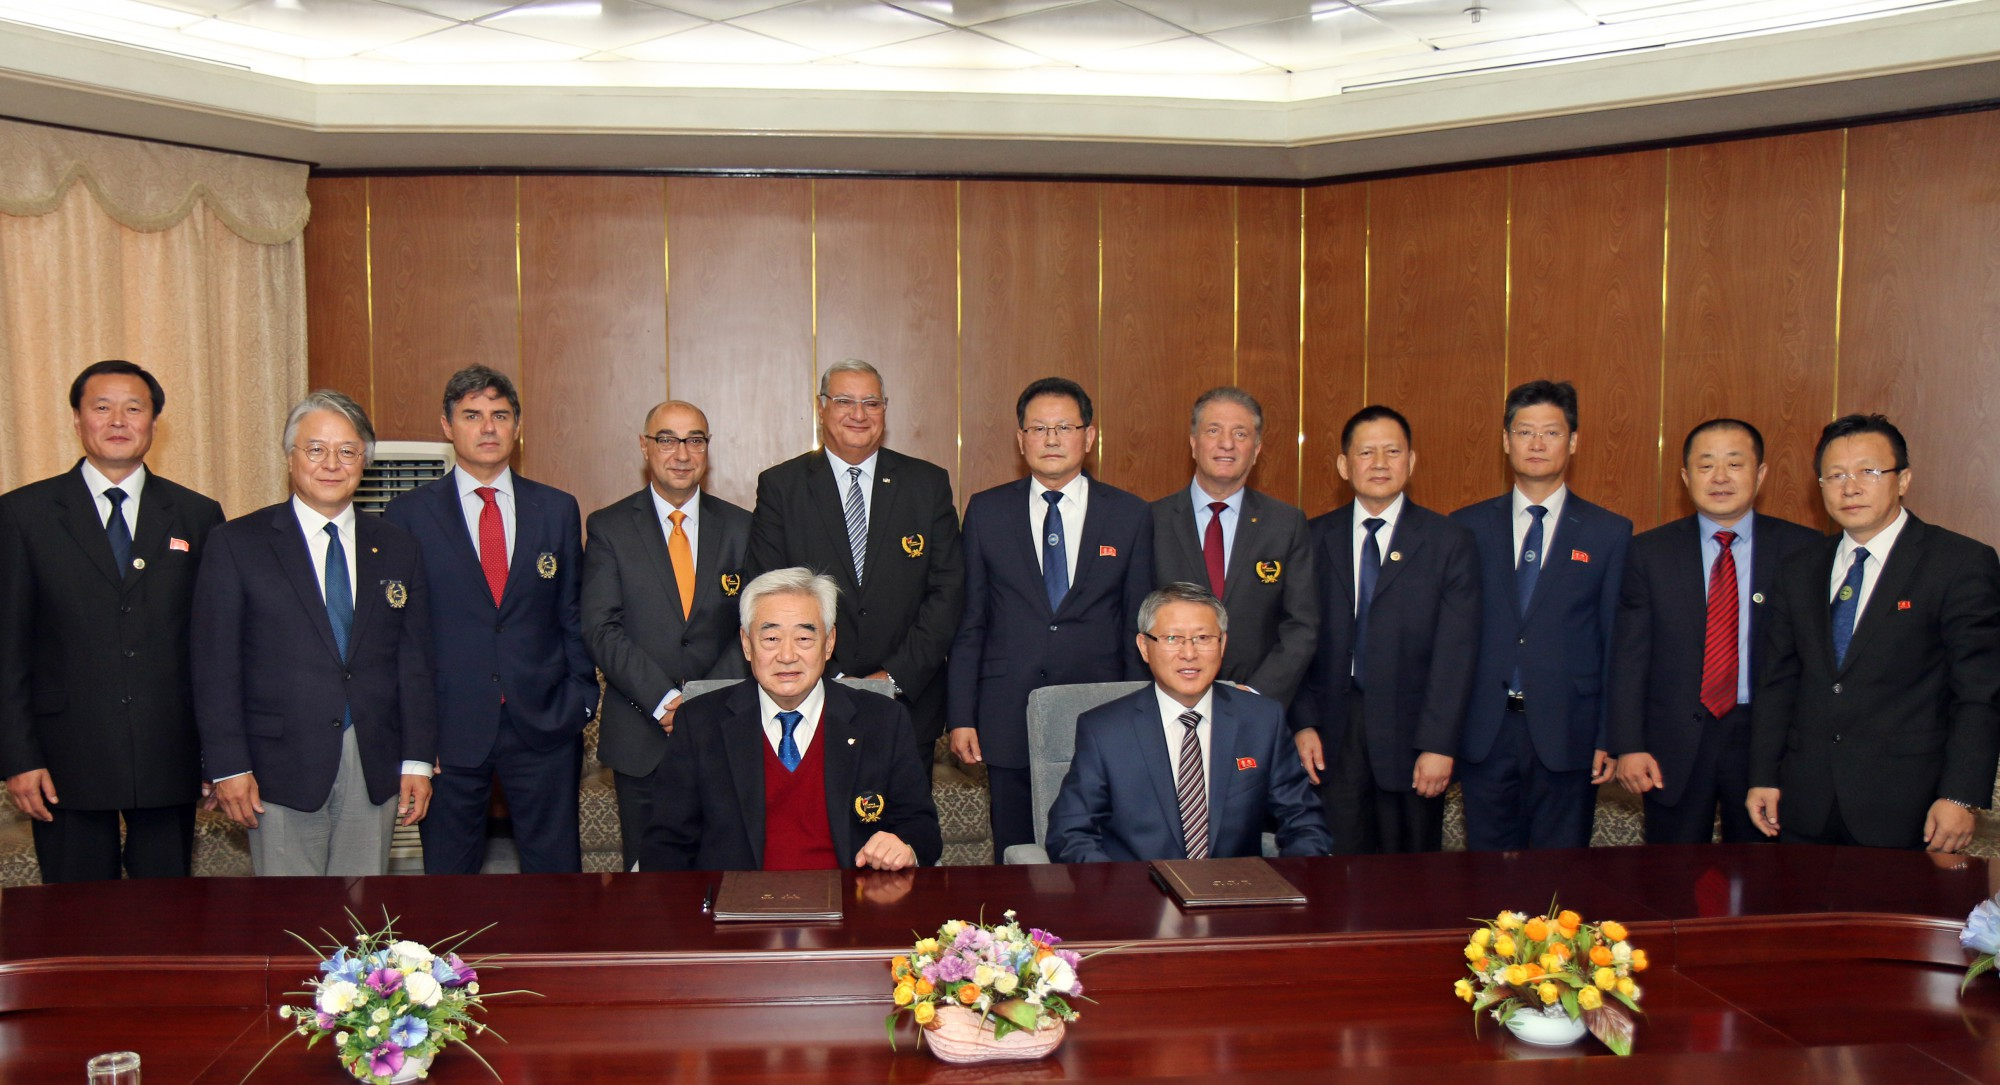 WT and ITF officials poses after the signing ceremony of WT-ITF agreement at Pyongyang Yanggakdo Internationl Hotel on Nov. 2 2018